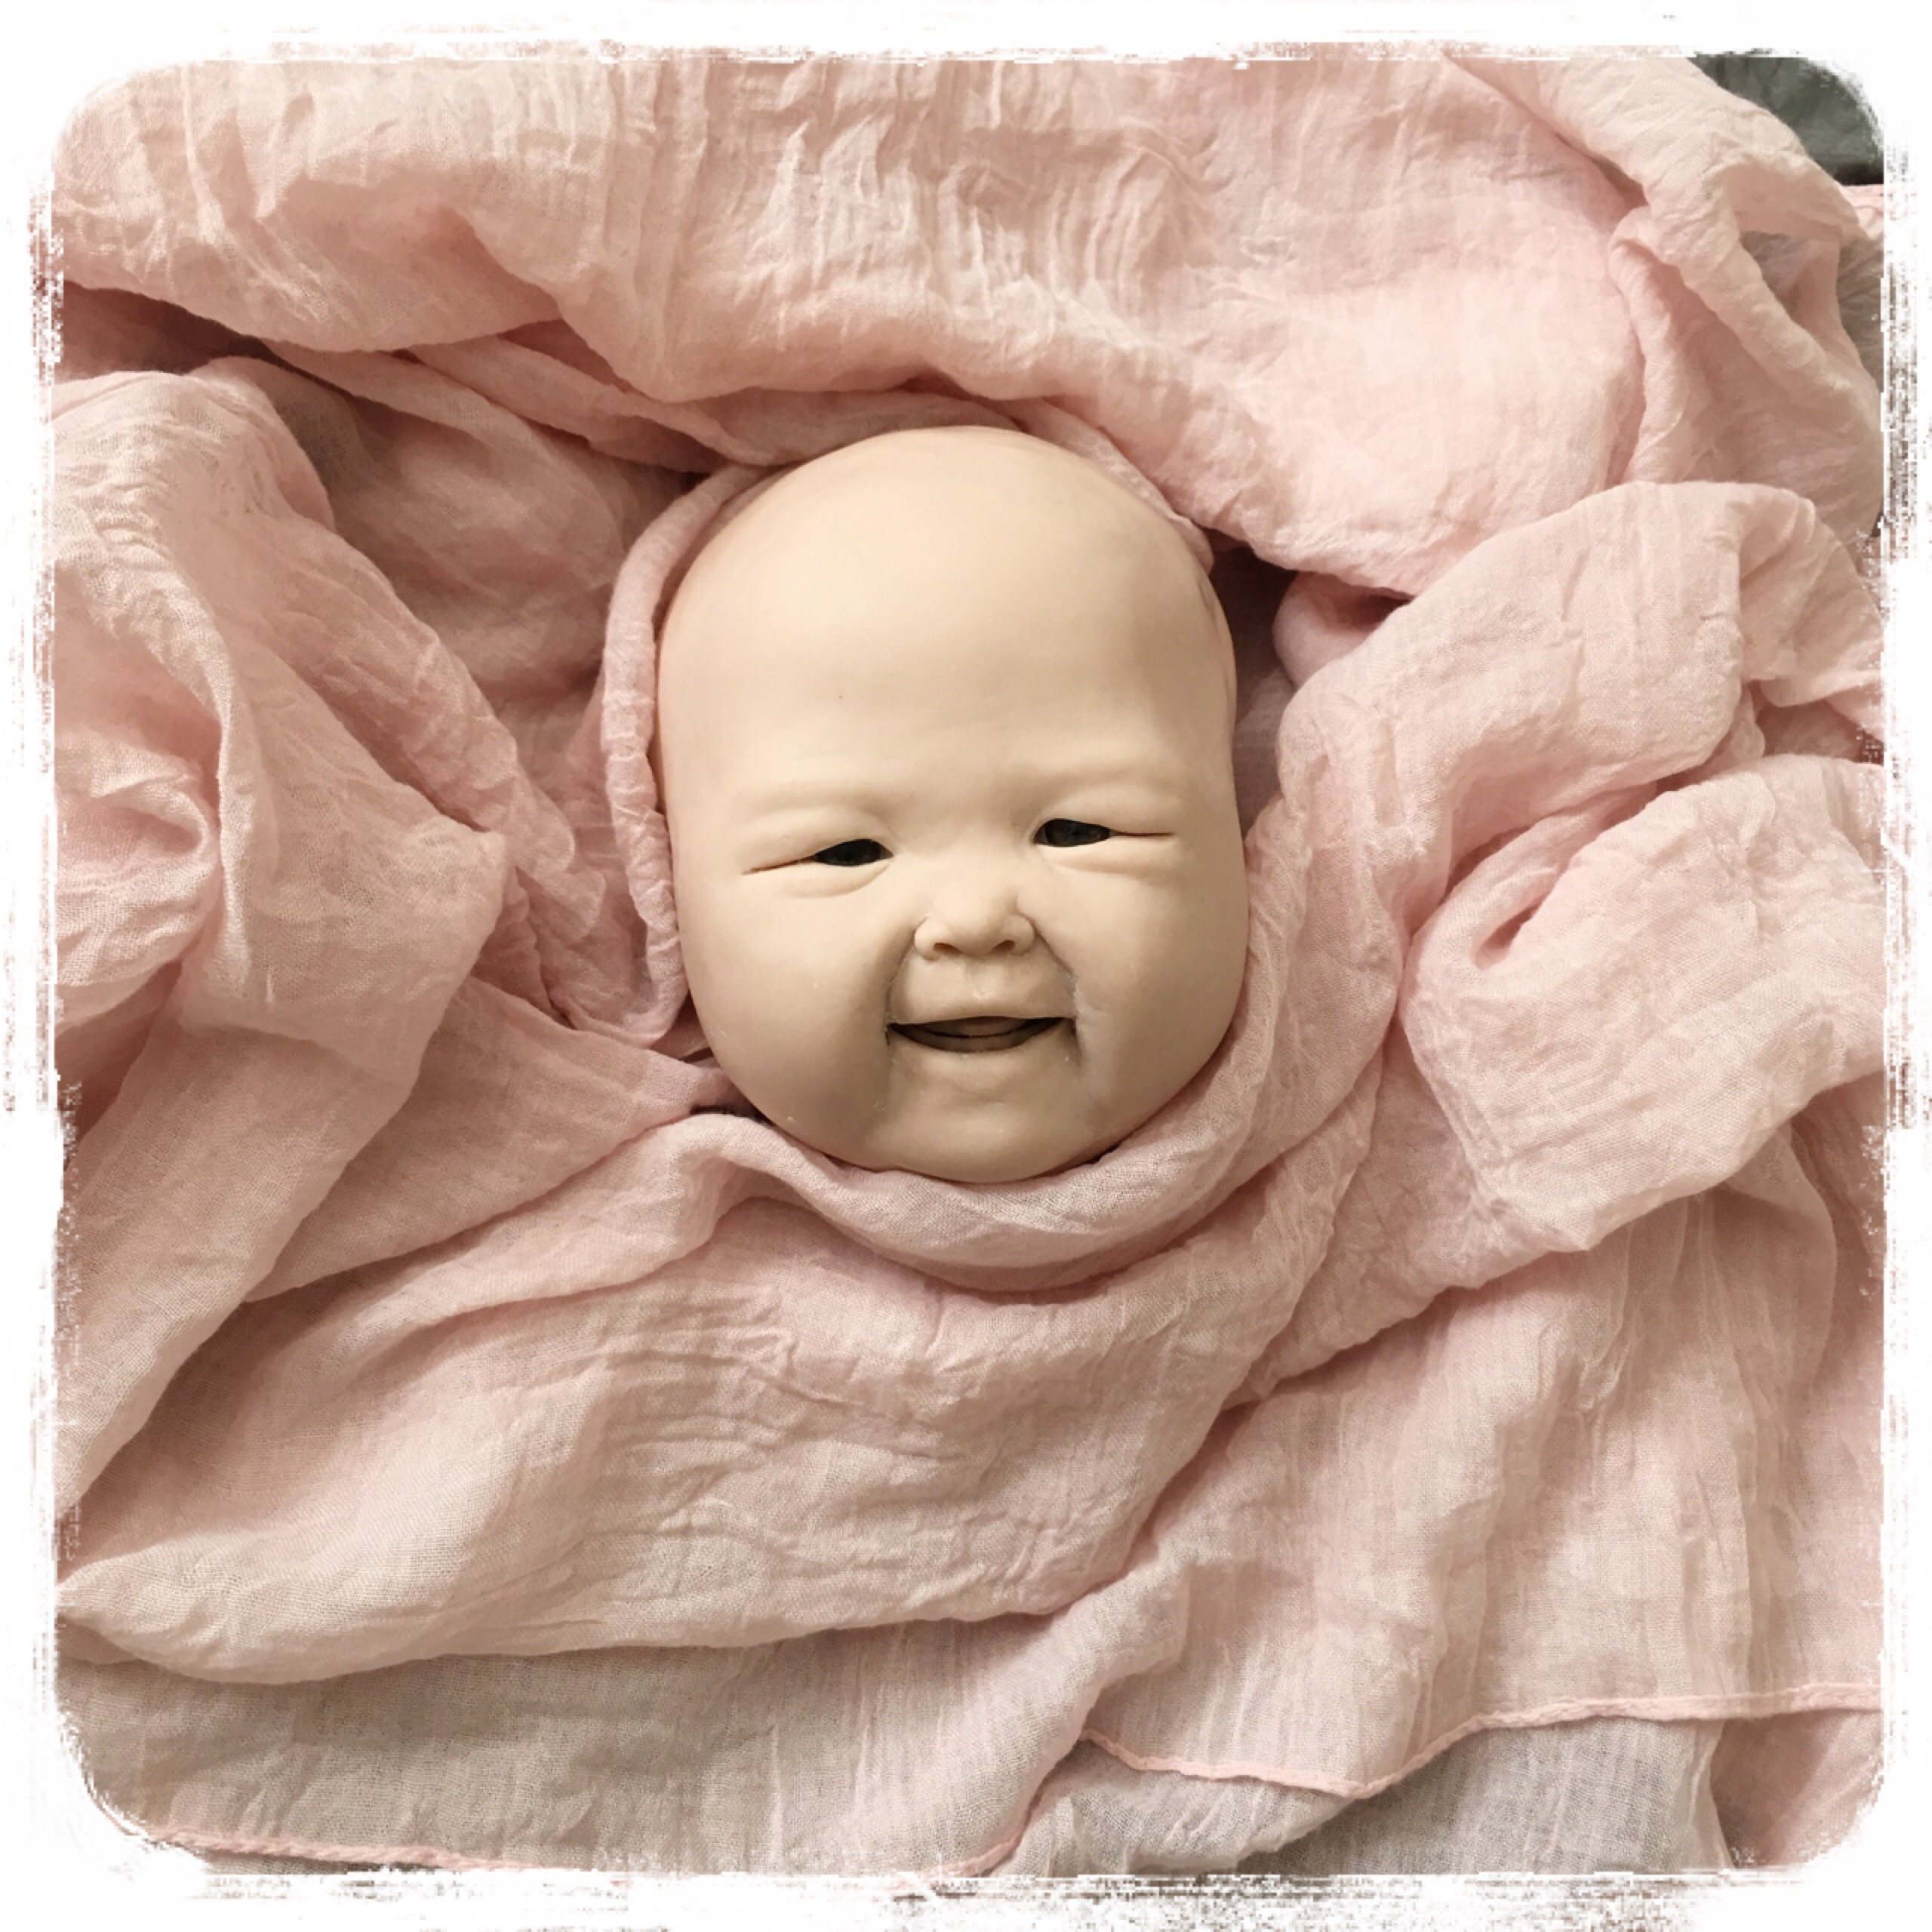 Full Body Silicone Baby For Sale 2015 - Img_7921